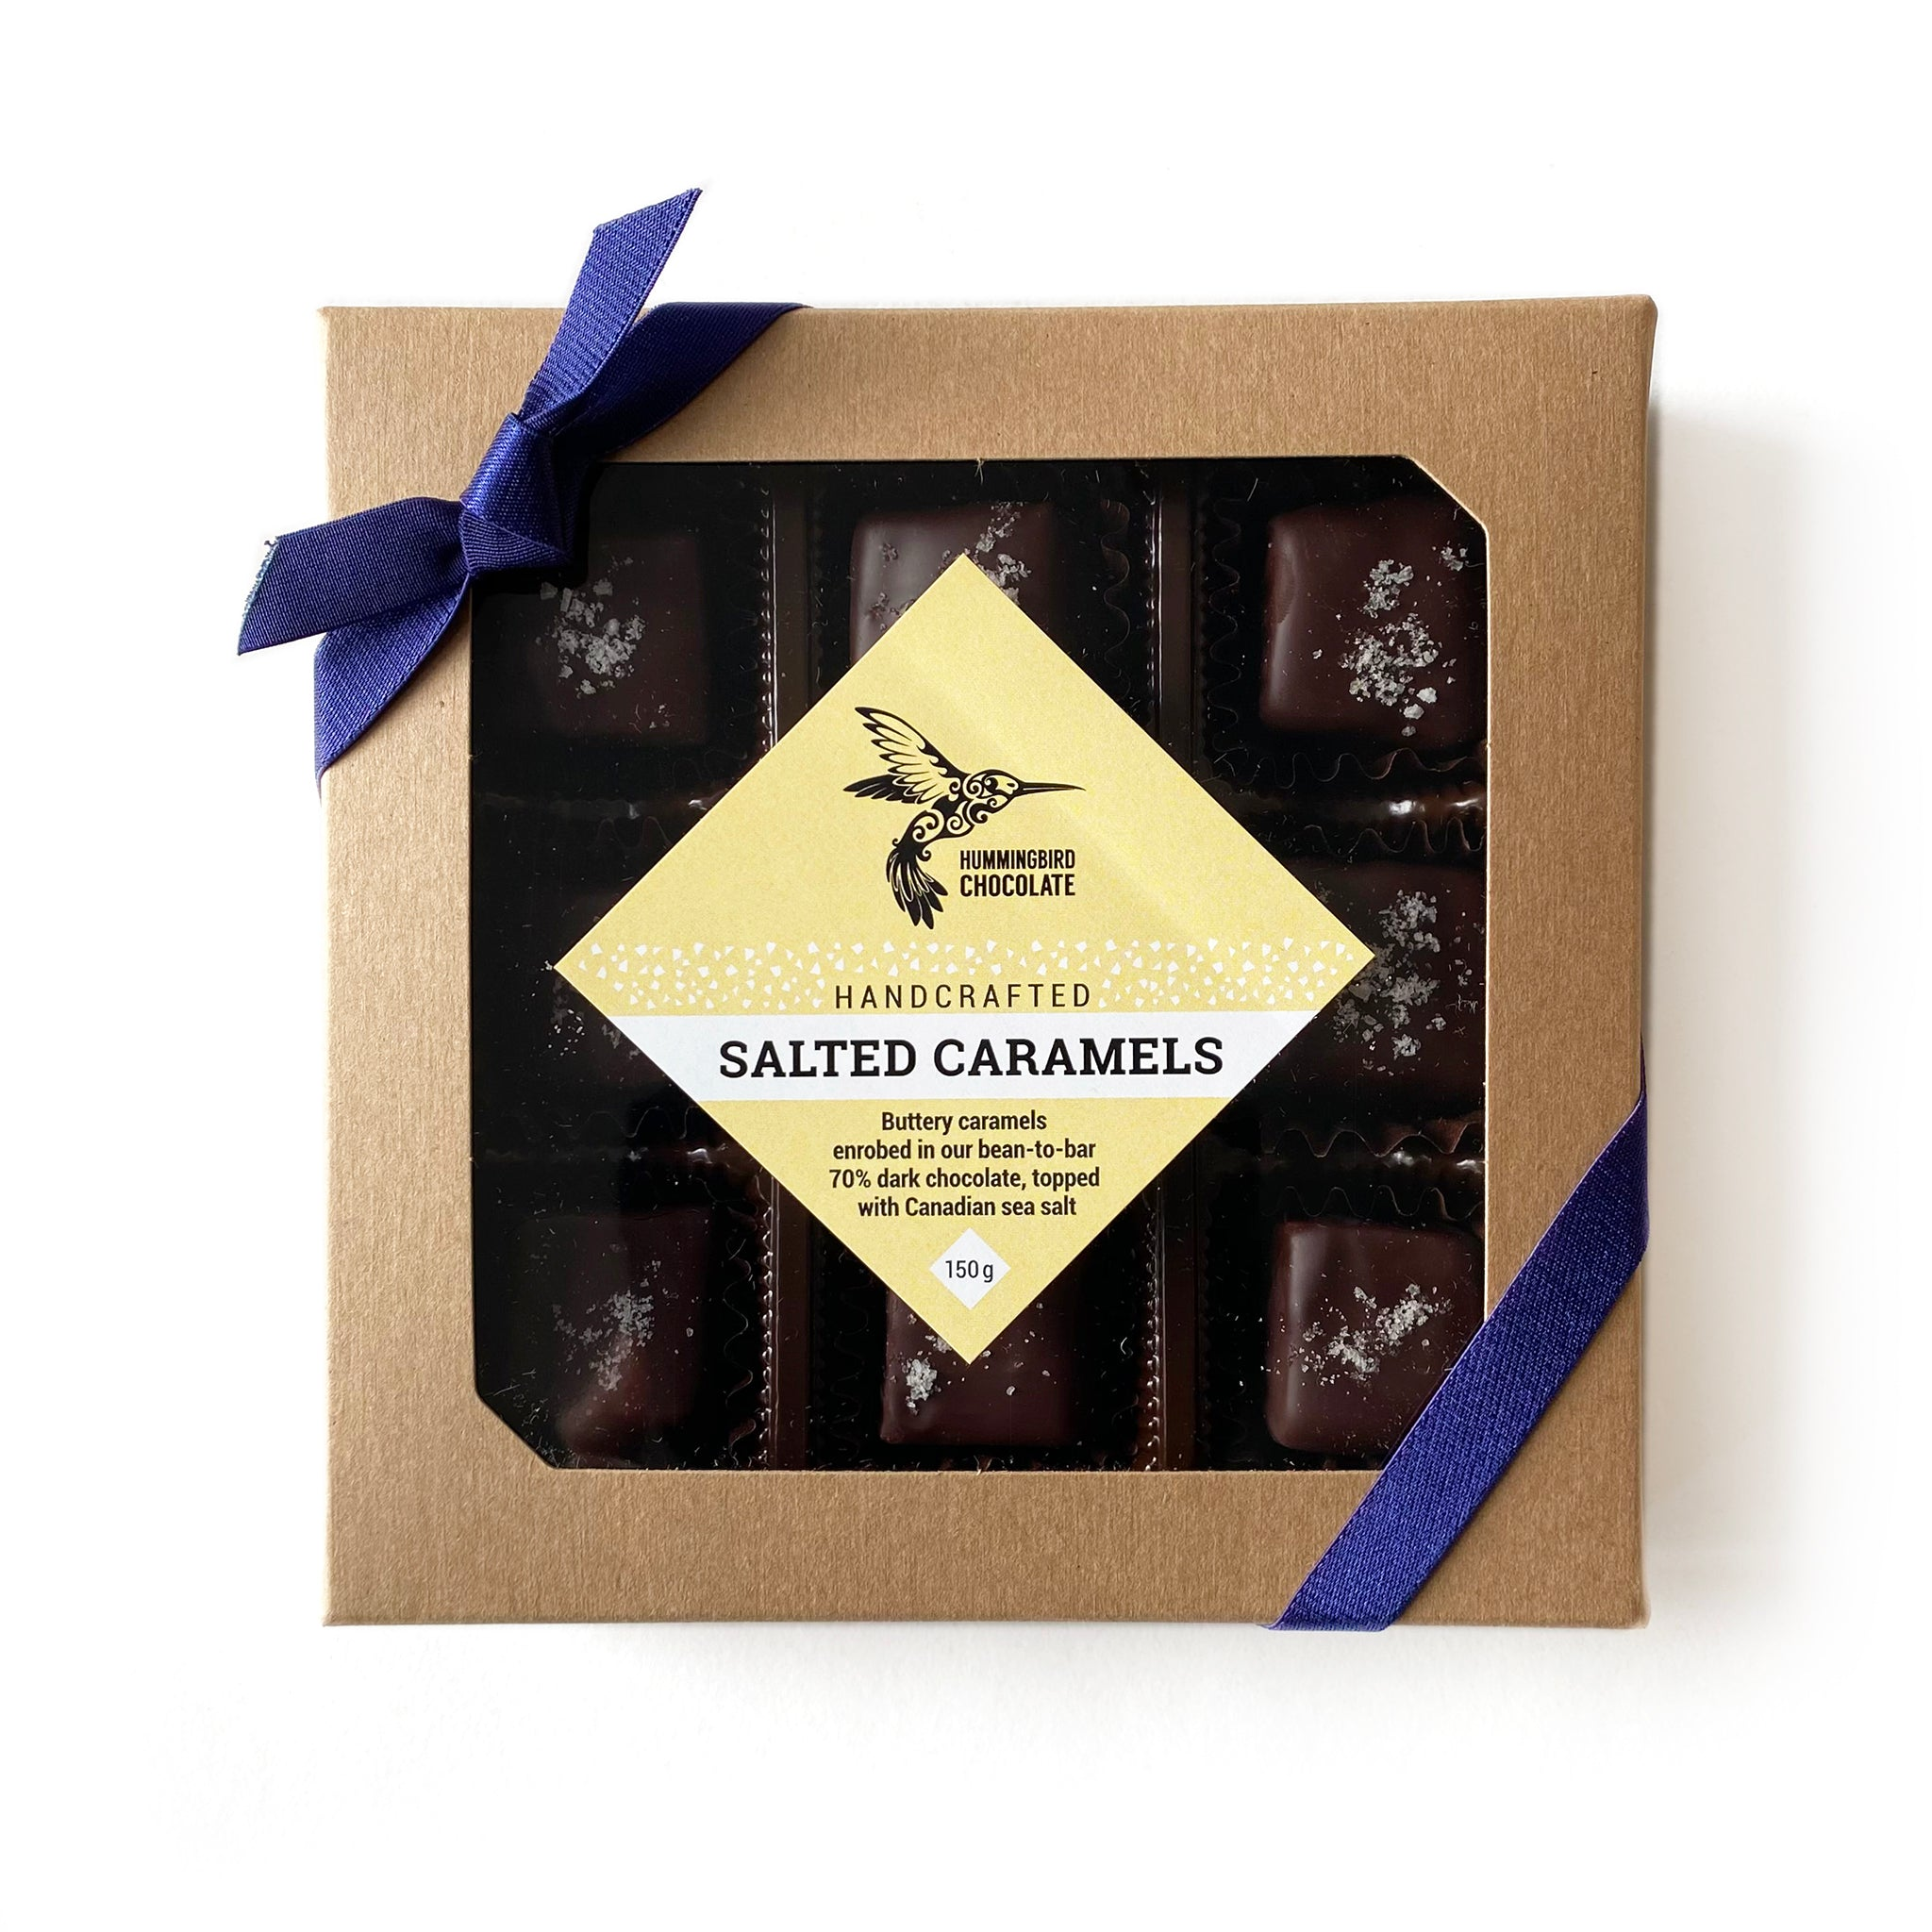 Hummingbird Chocolate Salted Caramels. Handcrafted buttery caramel enrobed in our bean-to-bar 70% dark chocolate topped with Canadian sea salt.